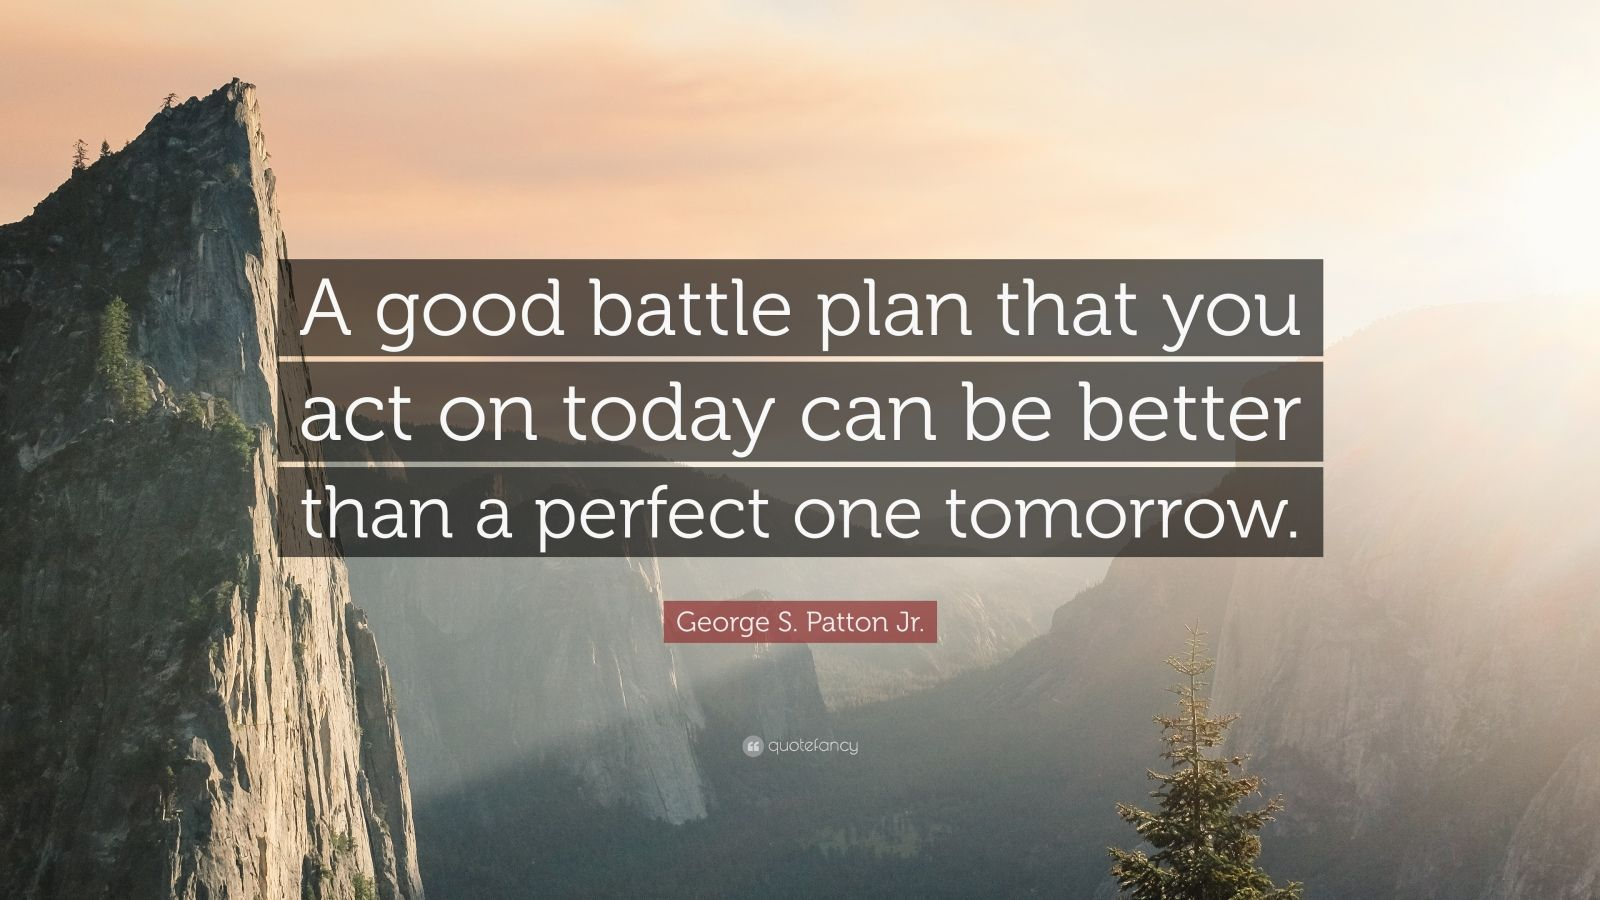 """George S. Patton Jr. Quote: """"A good battle plan that you act on today can be better than a perfect one tomorrow."""""""